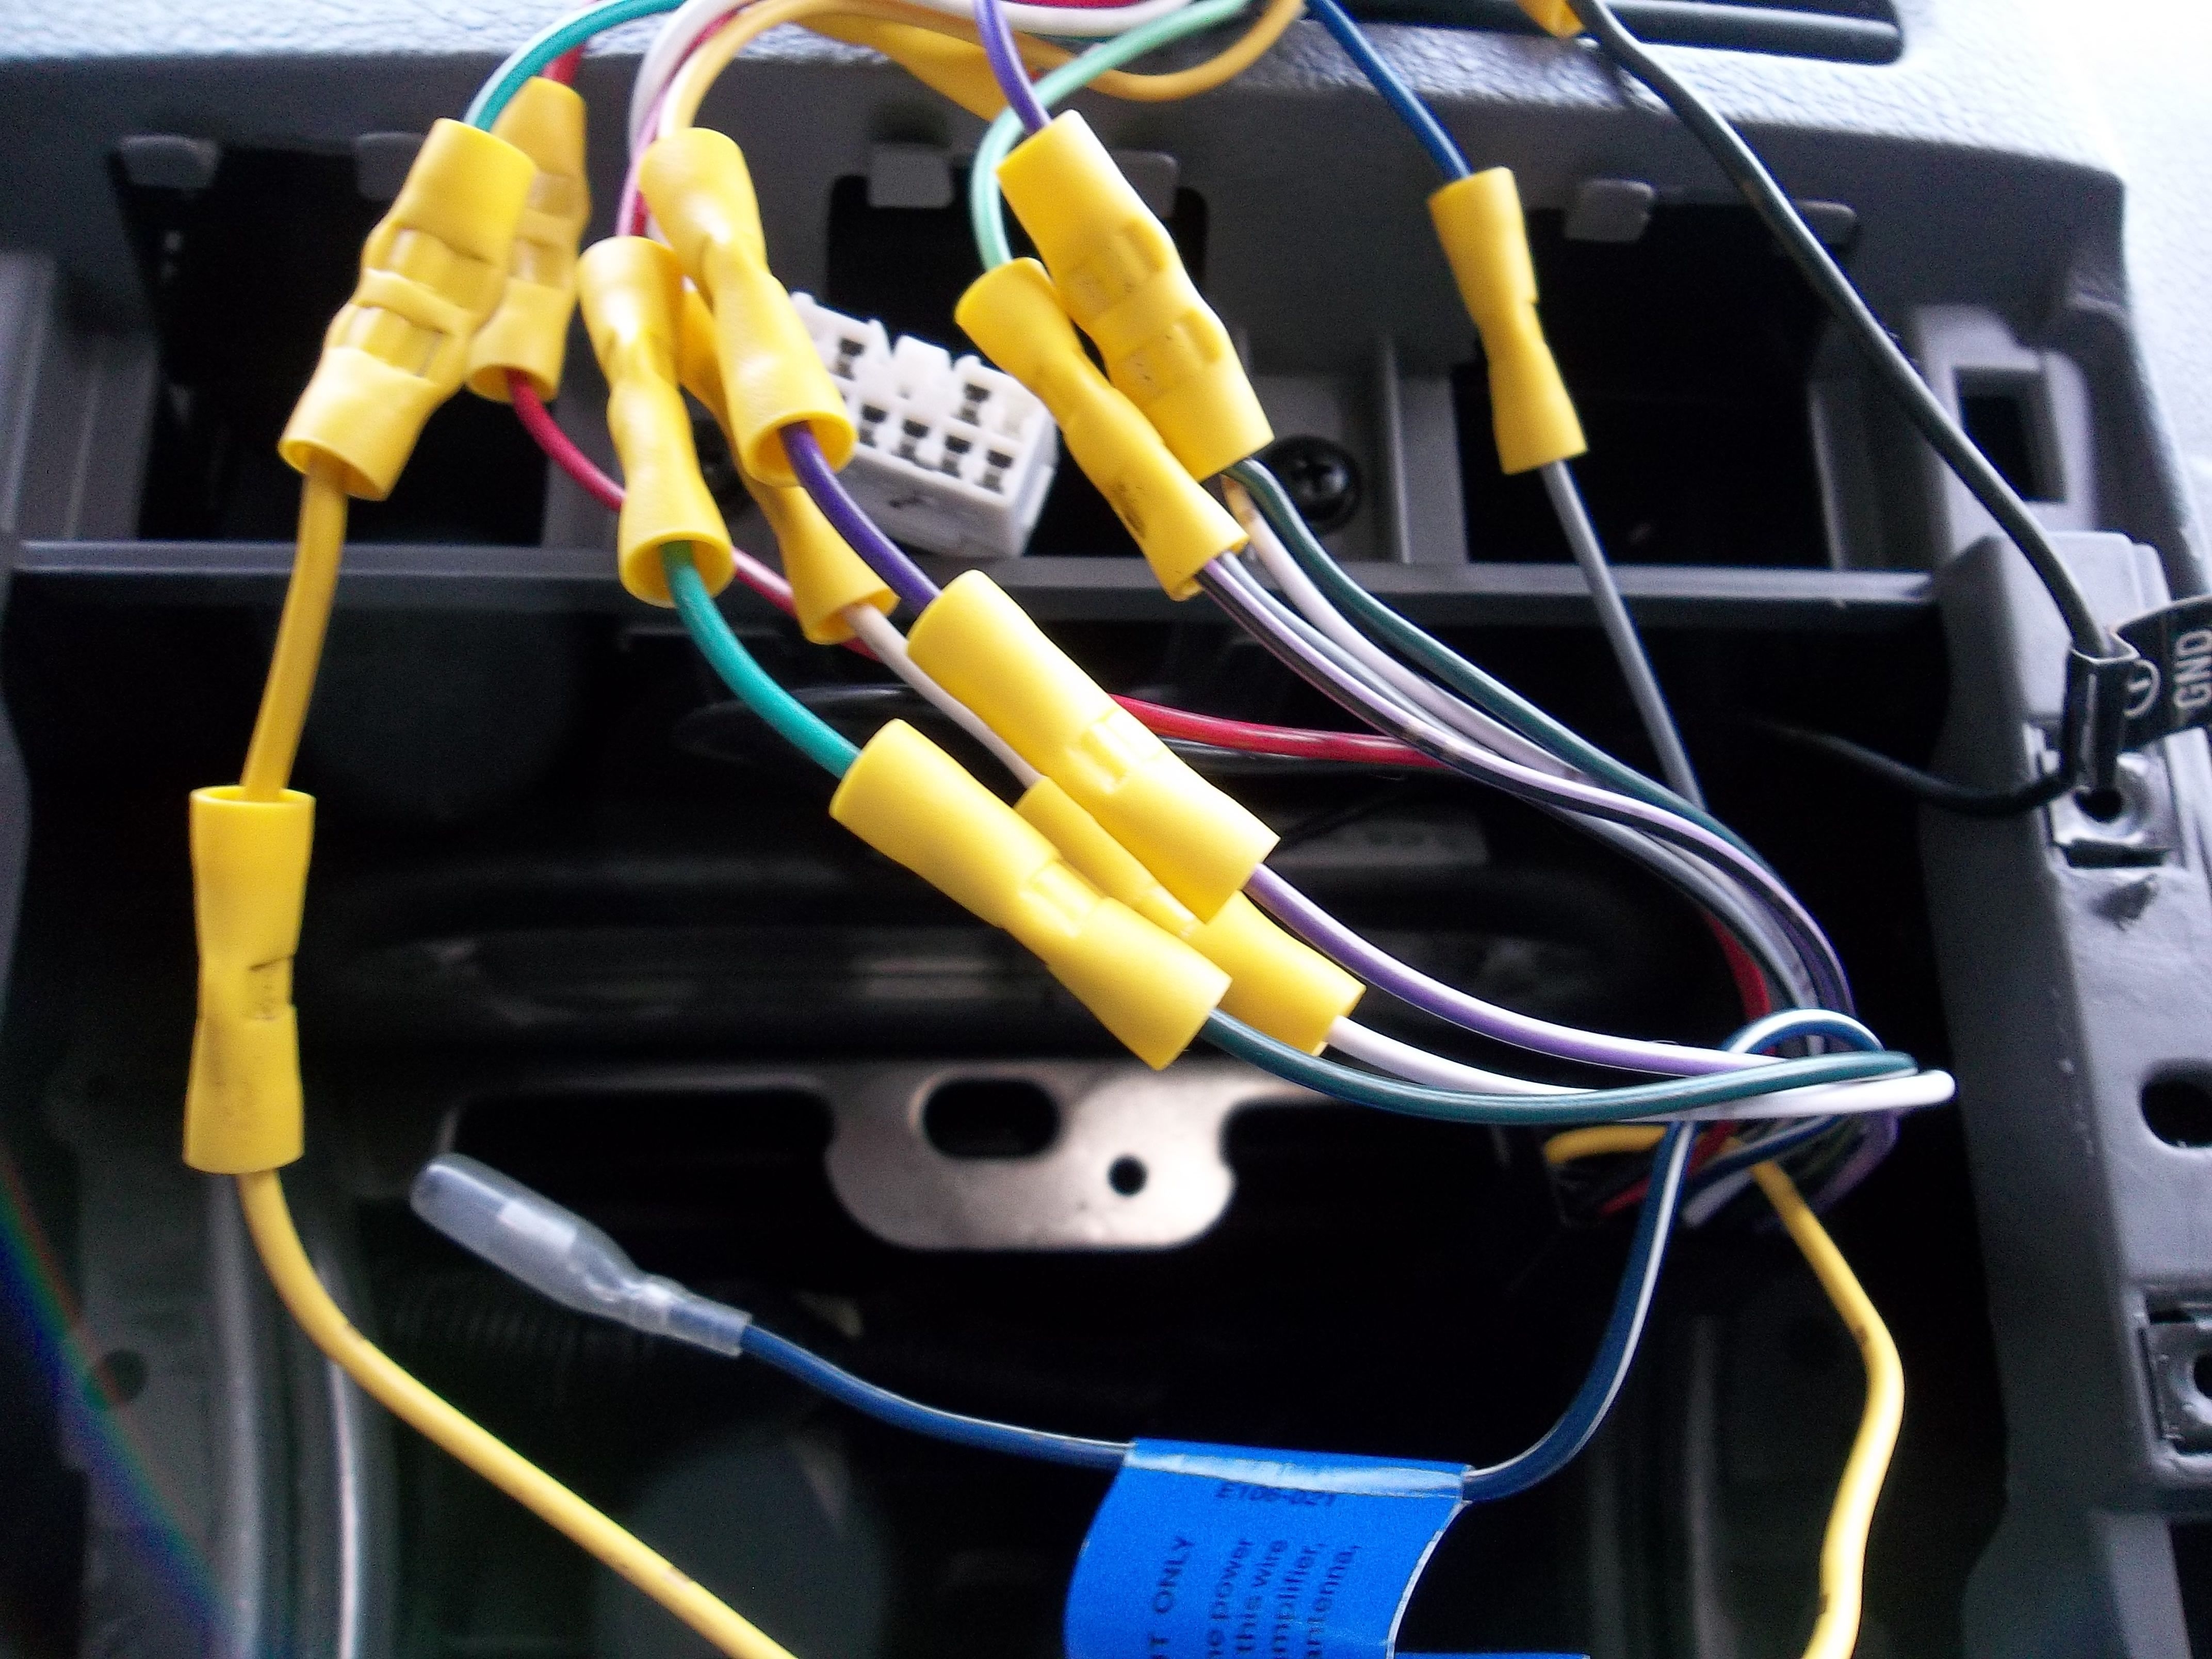 What You Need To Know About Car Amp Wiring Car Amp Car Audio Installation Subwoofer Wiring